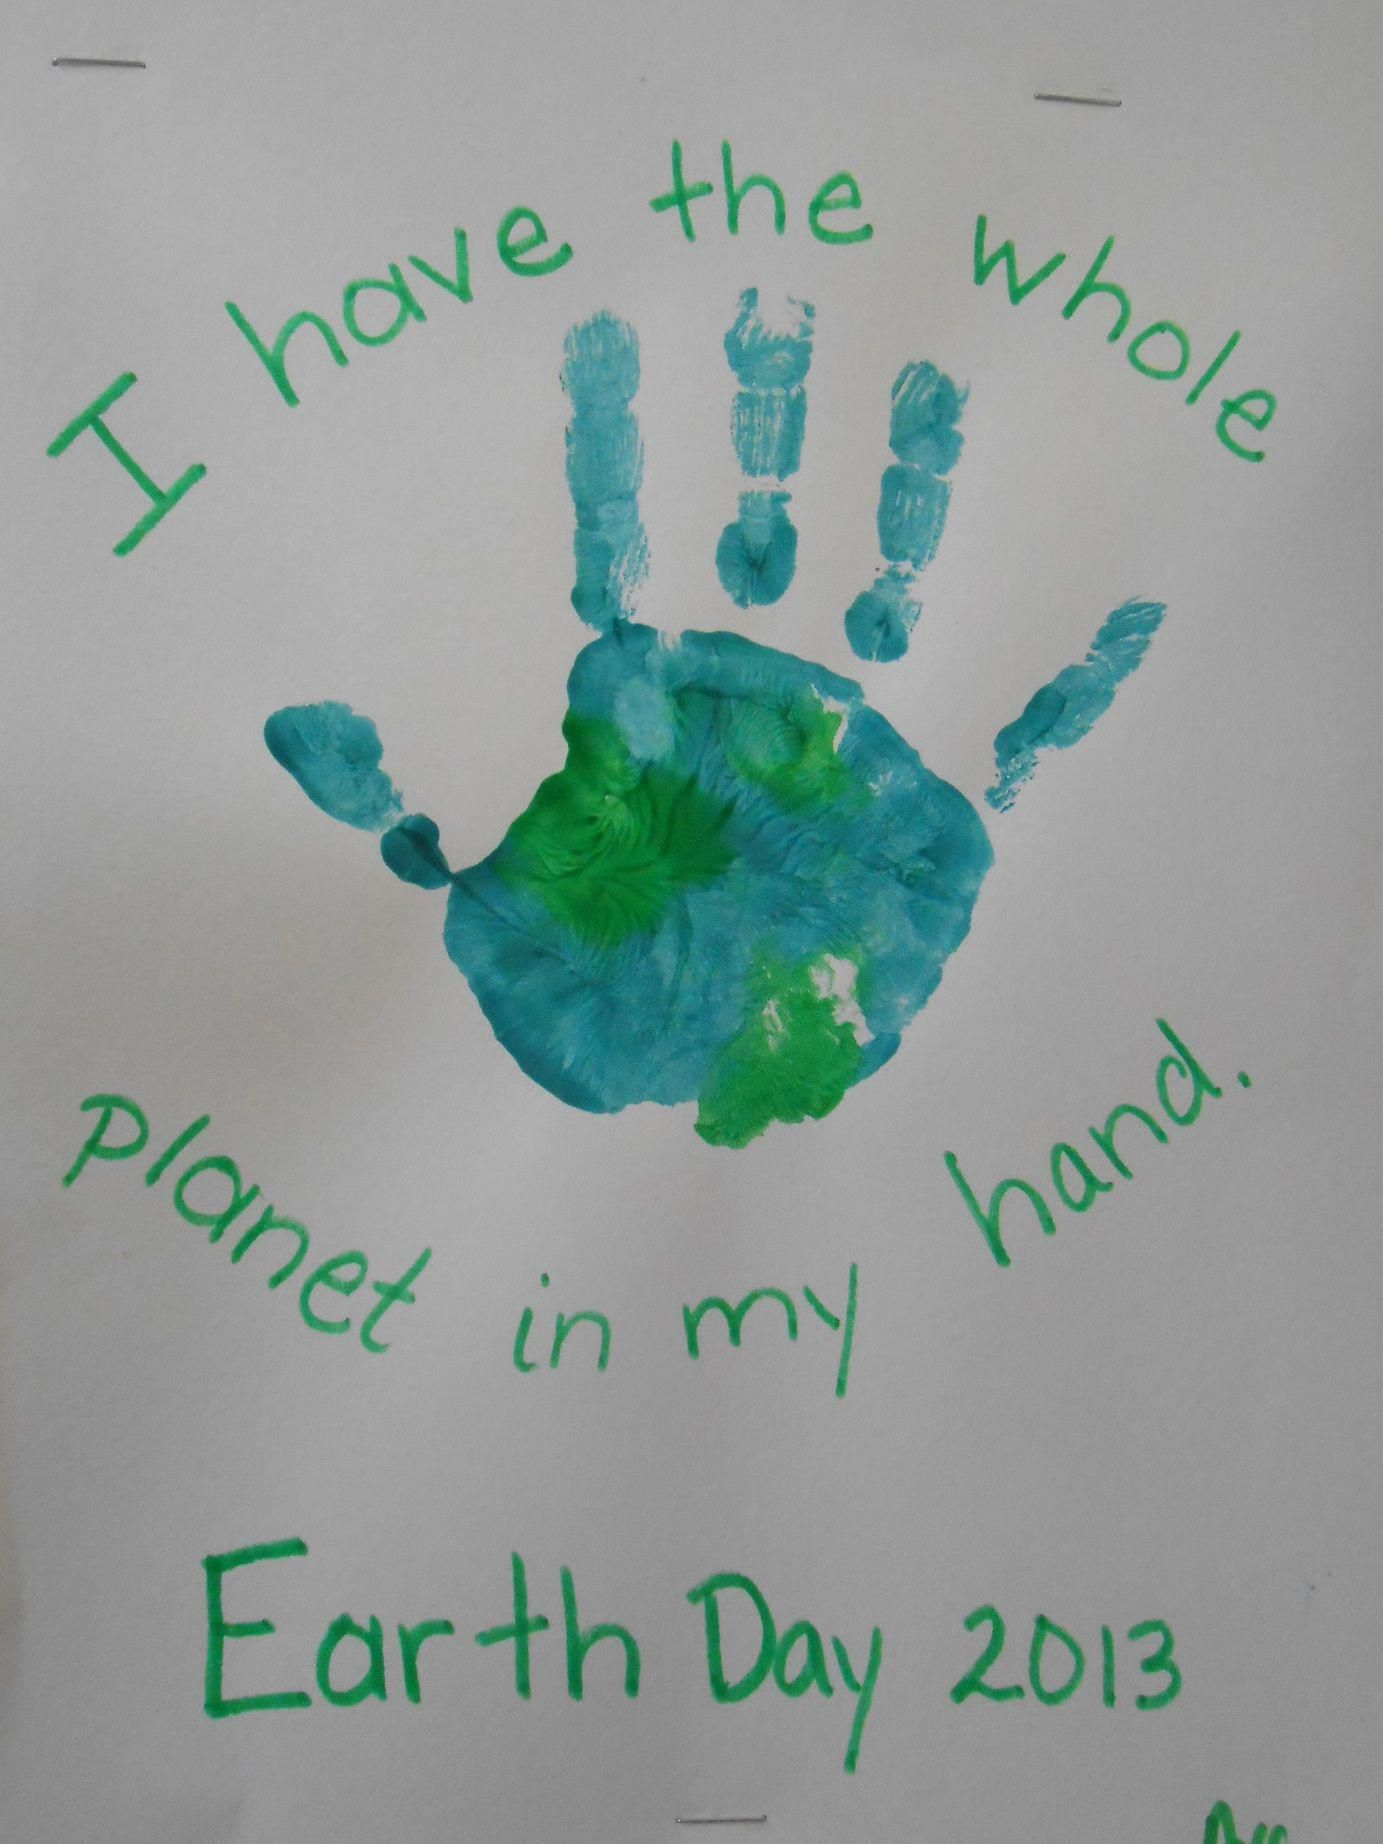 Earth Day Hand Painting Project Preschool Earthdaycrafts